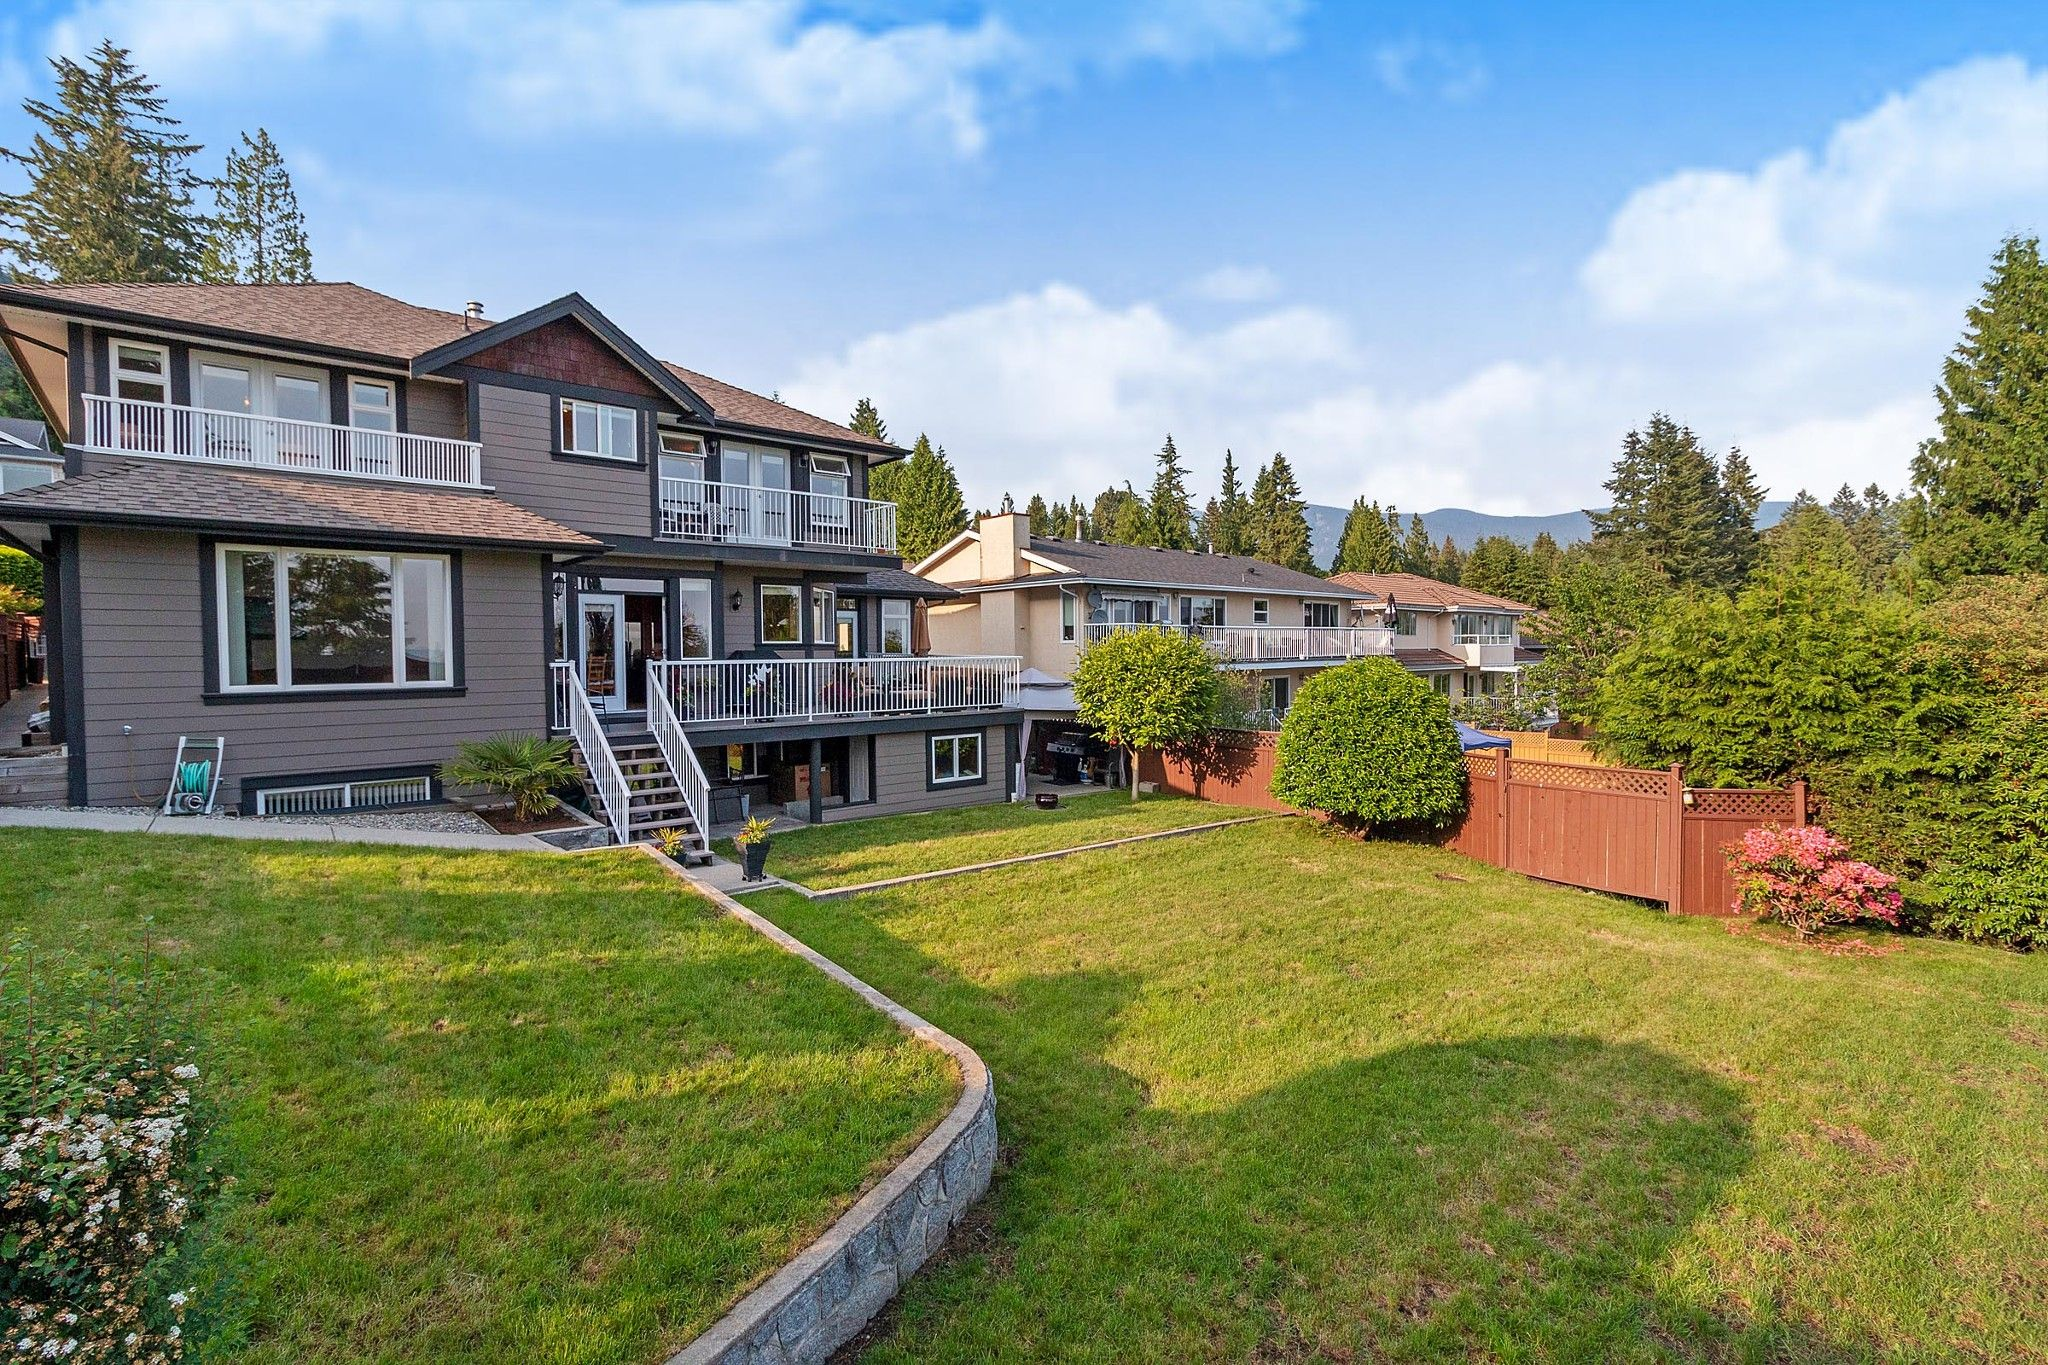 Photo 35: Photos: 1237 DYCK Road in North Vancouver: Lynn Valley House for sale : MLS®# R2374868